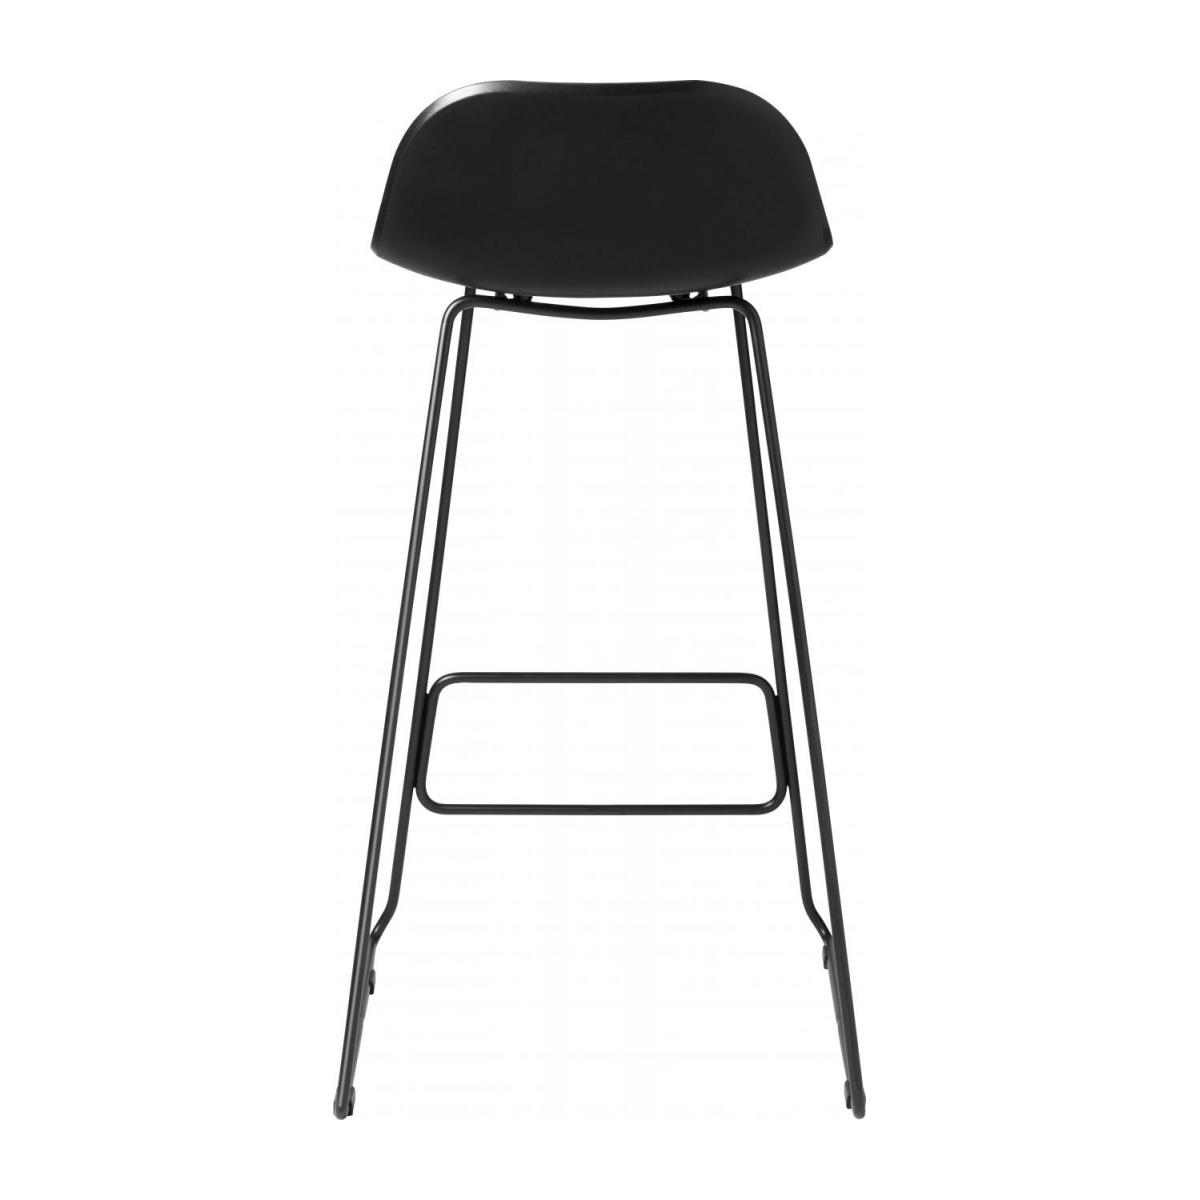 Black high stool in polypropylene and lacquered steel legs n°3